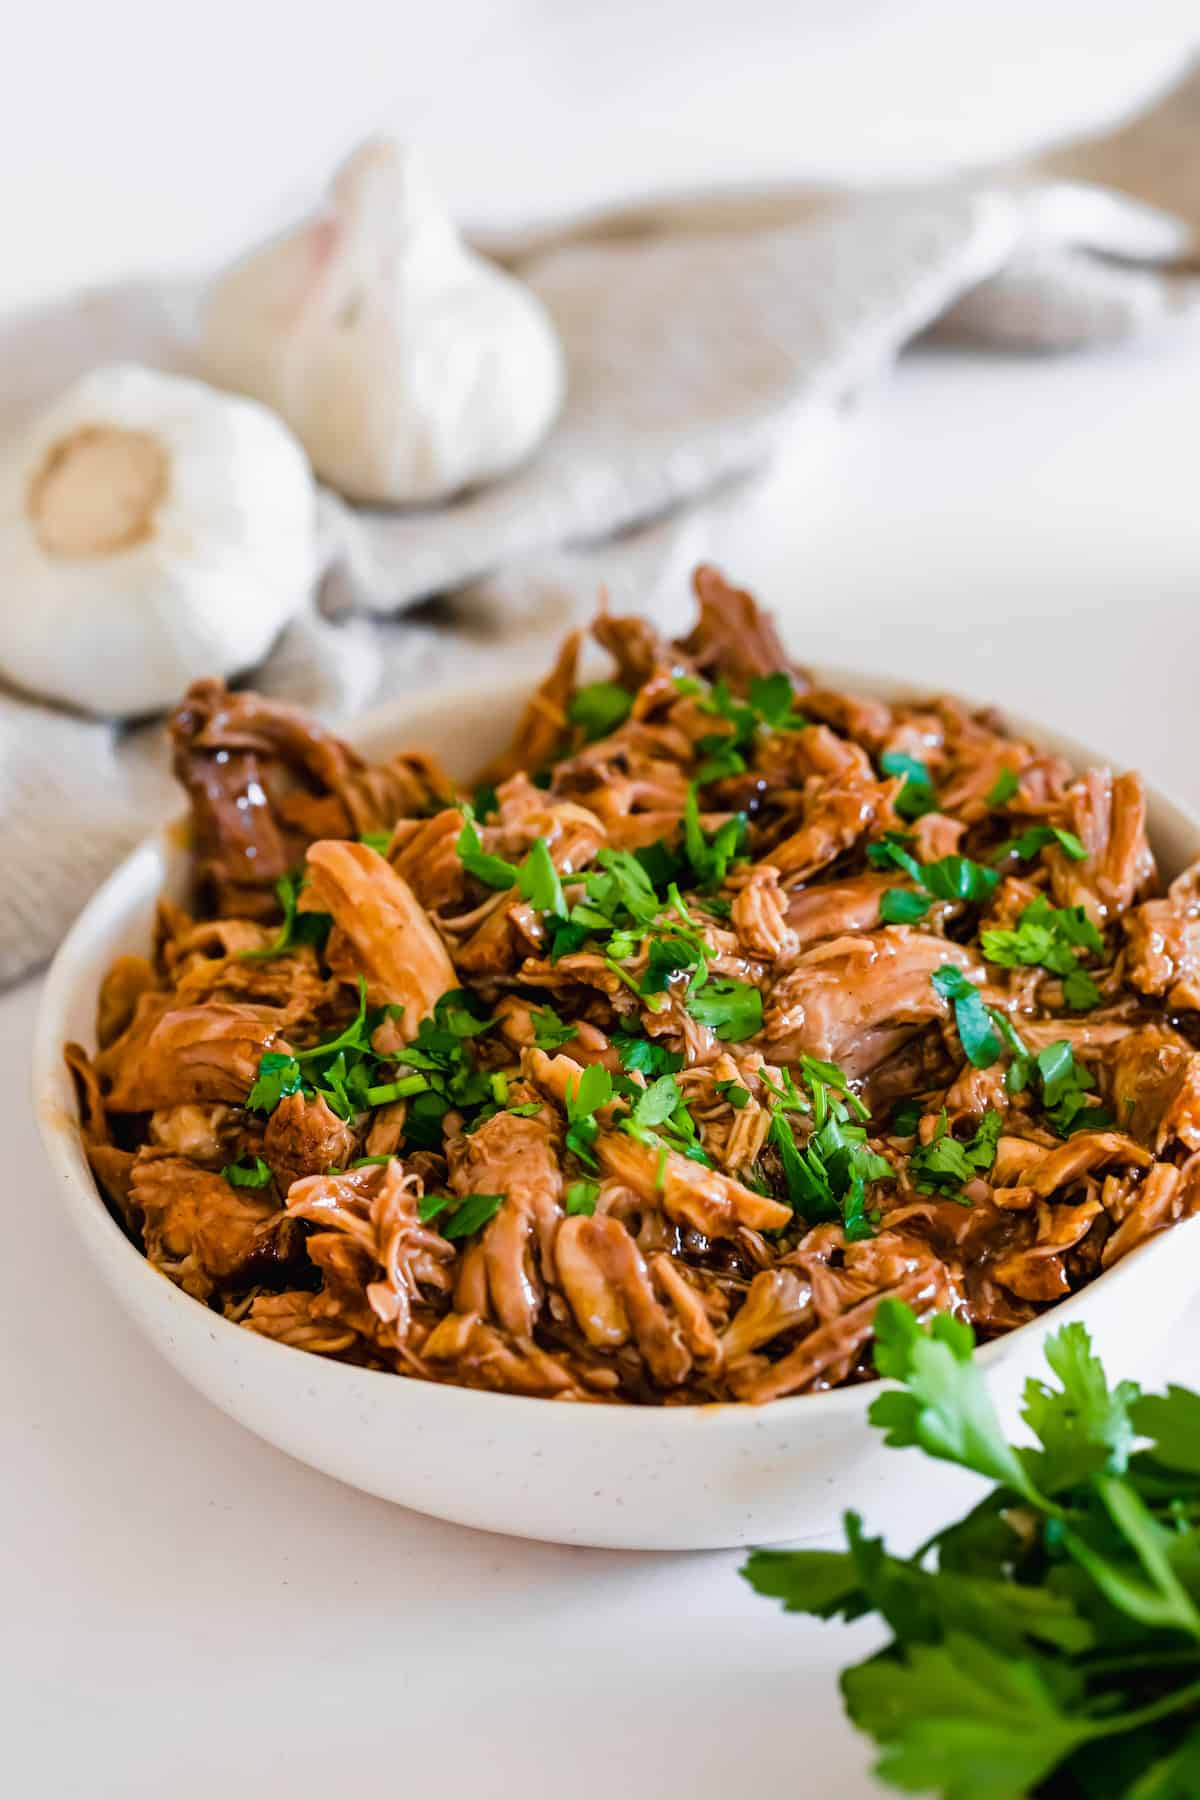 Instant Pot Pulled Pork in a White Bowl on a White Countertop